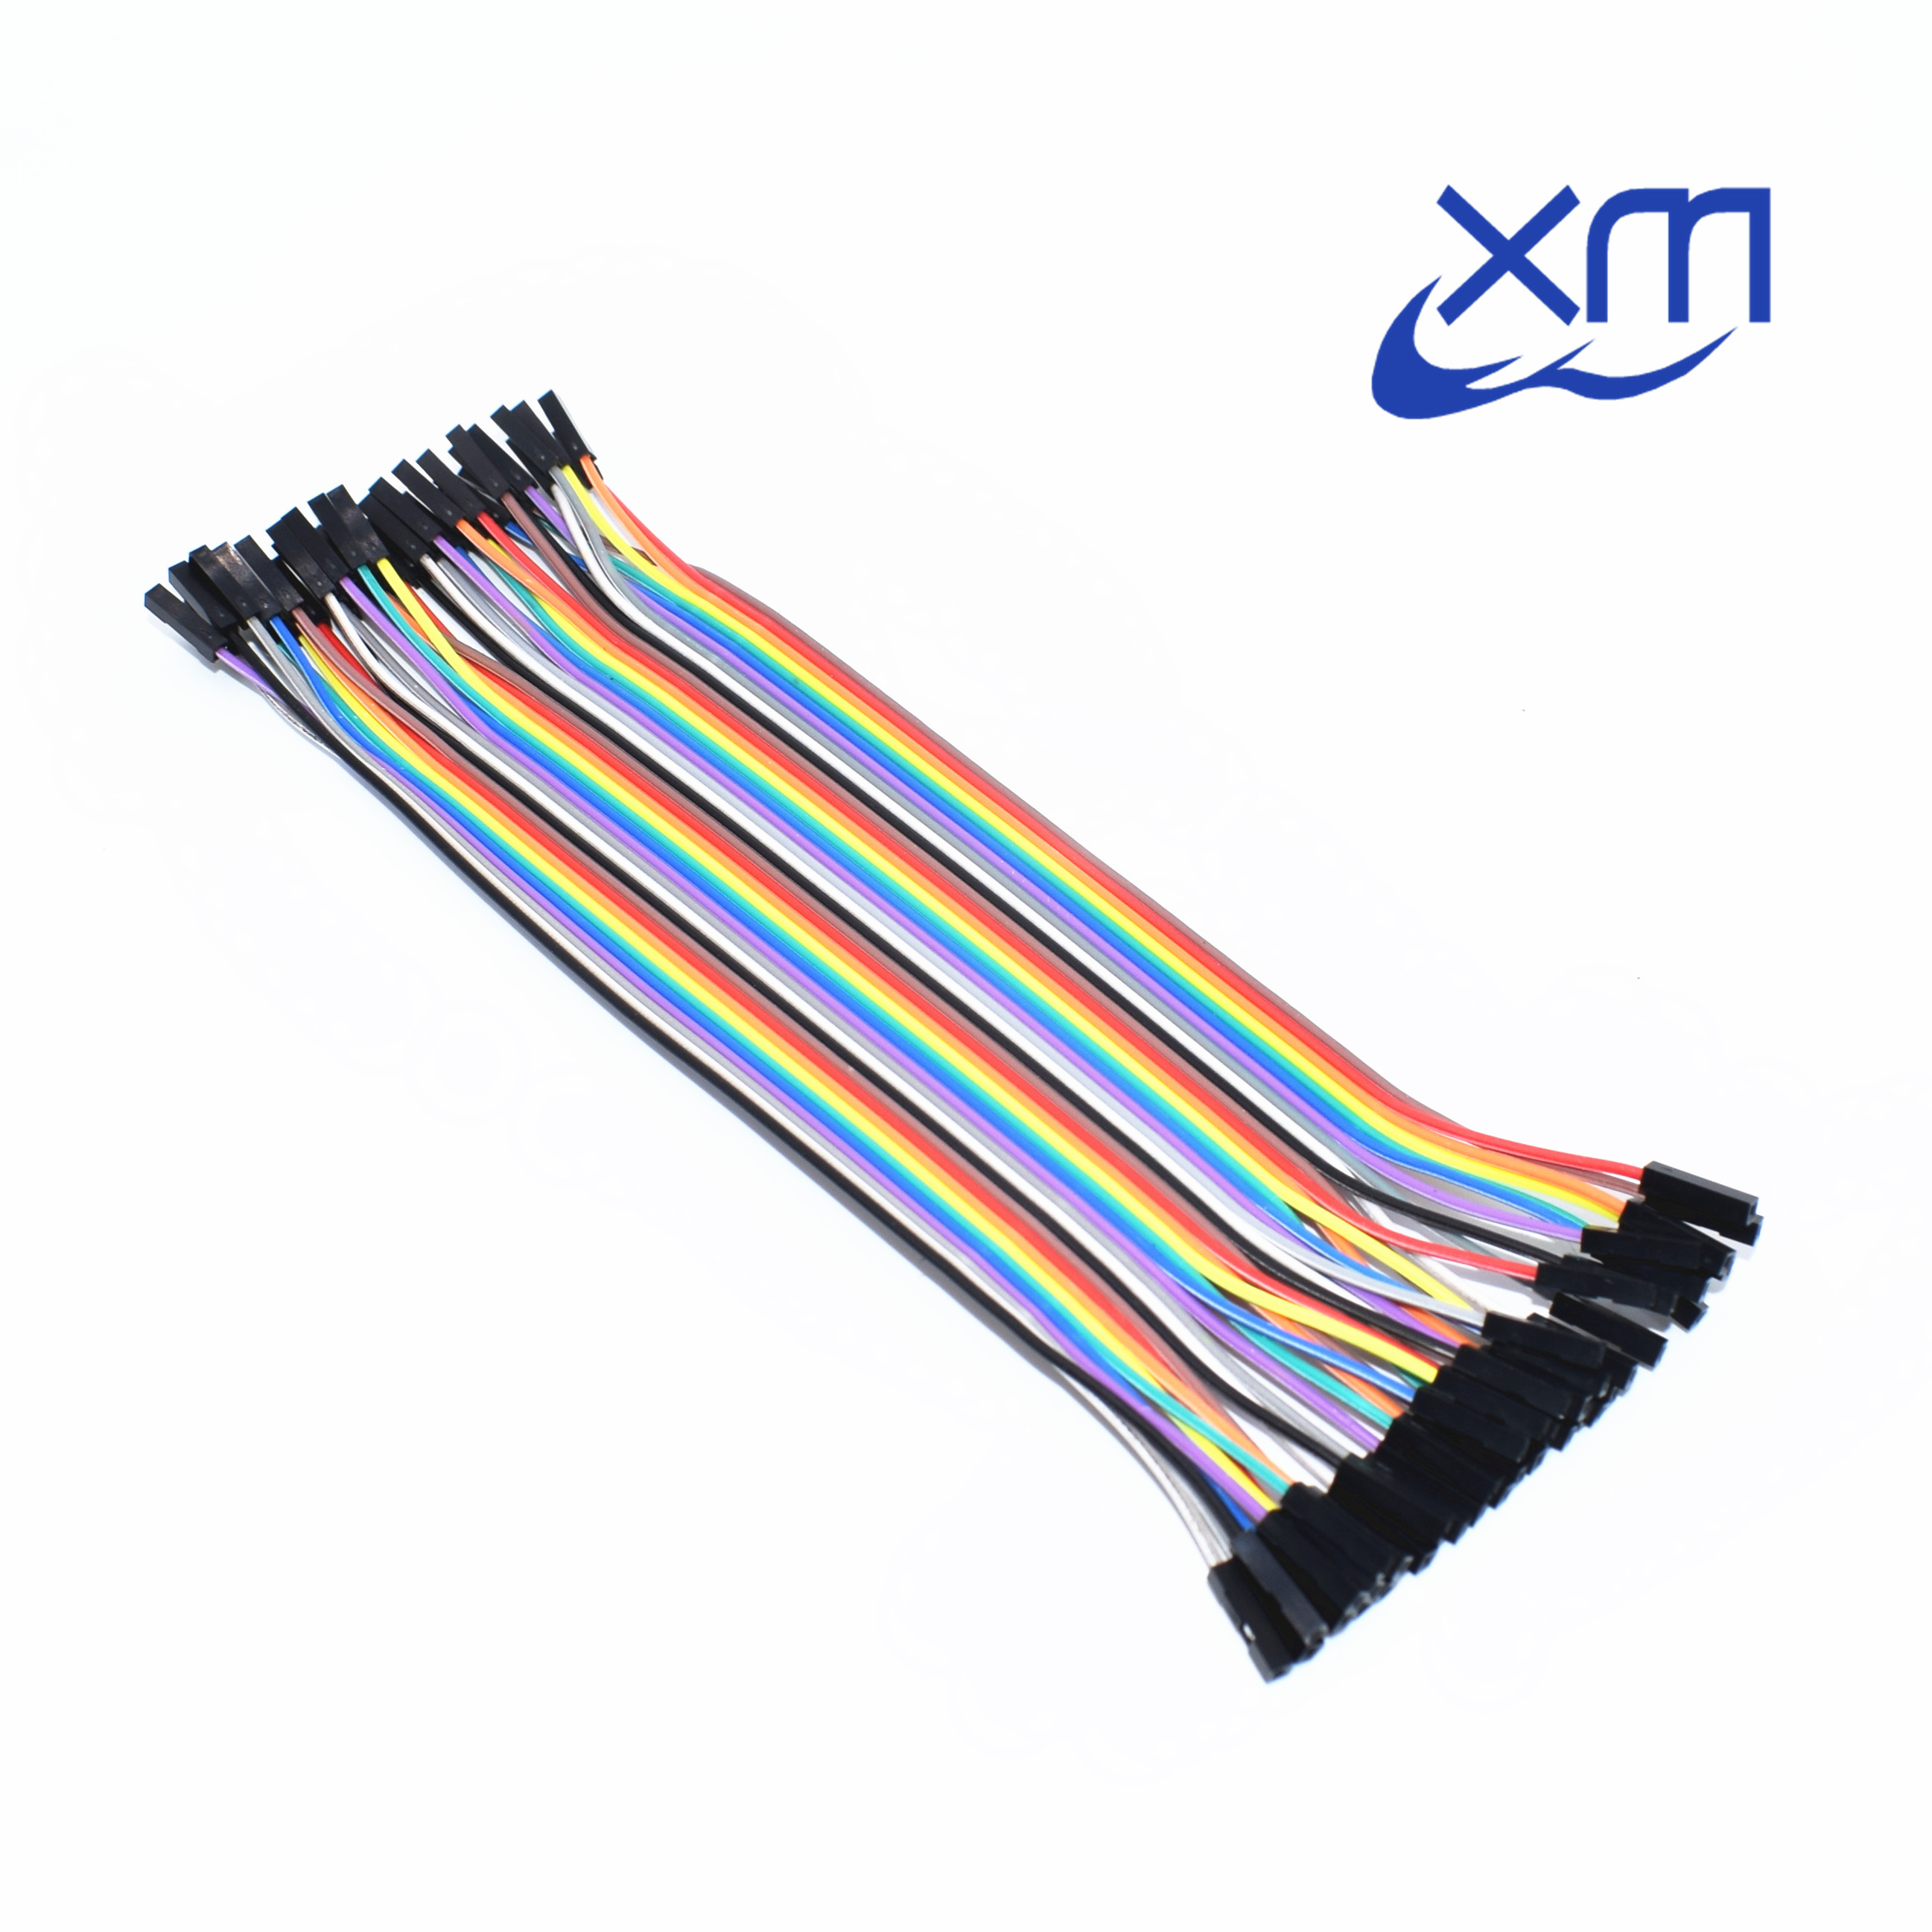 Free Shipping 400pcs dupont cable jumper wire dupont line female to female dupont line cm 1P-1P 3